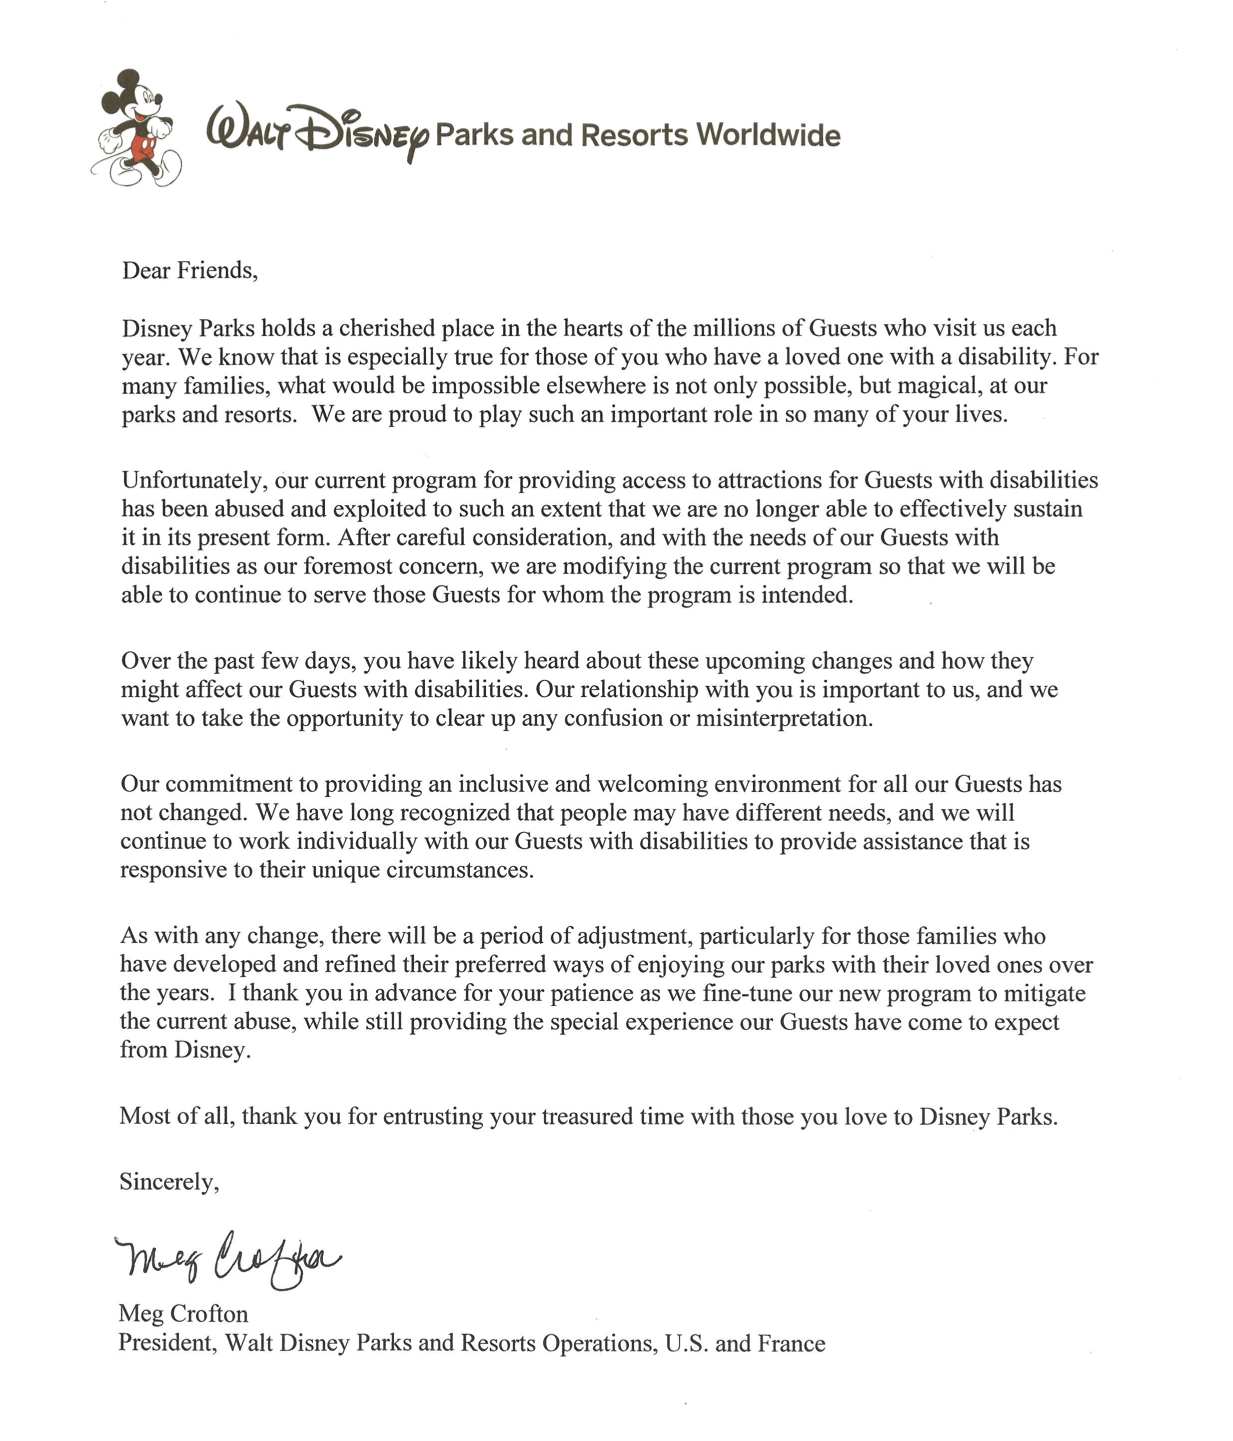 Letter from Meg Crofton, President, Walt Disney Parks and Resorts Operations